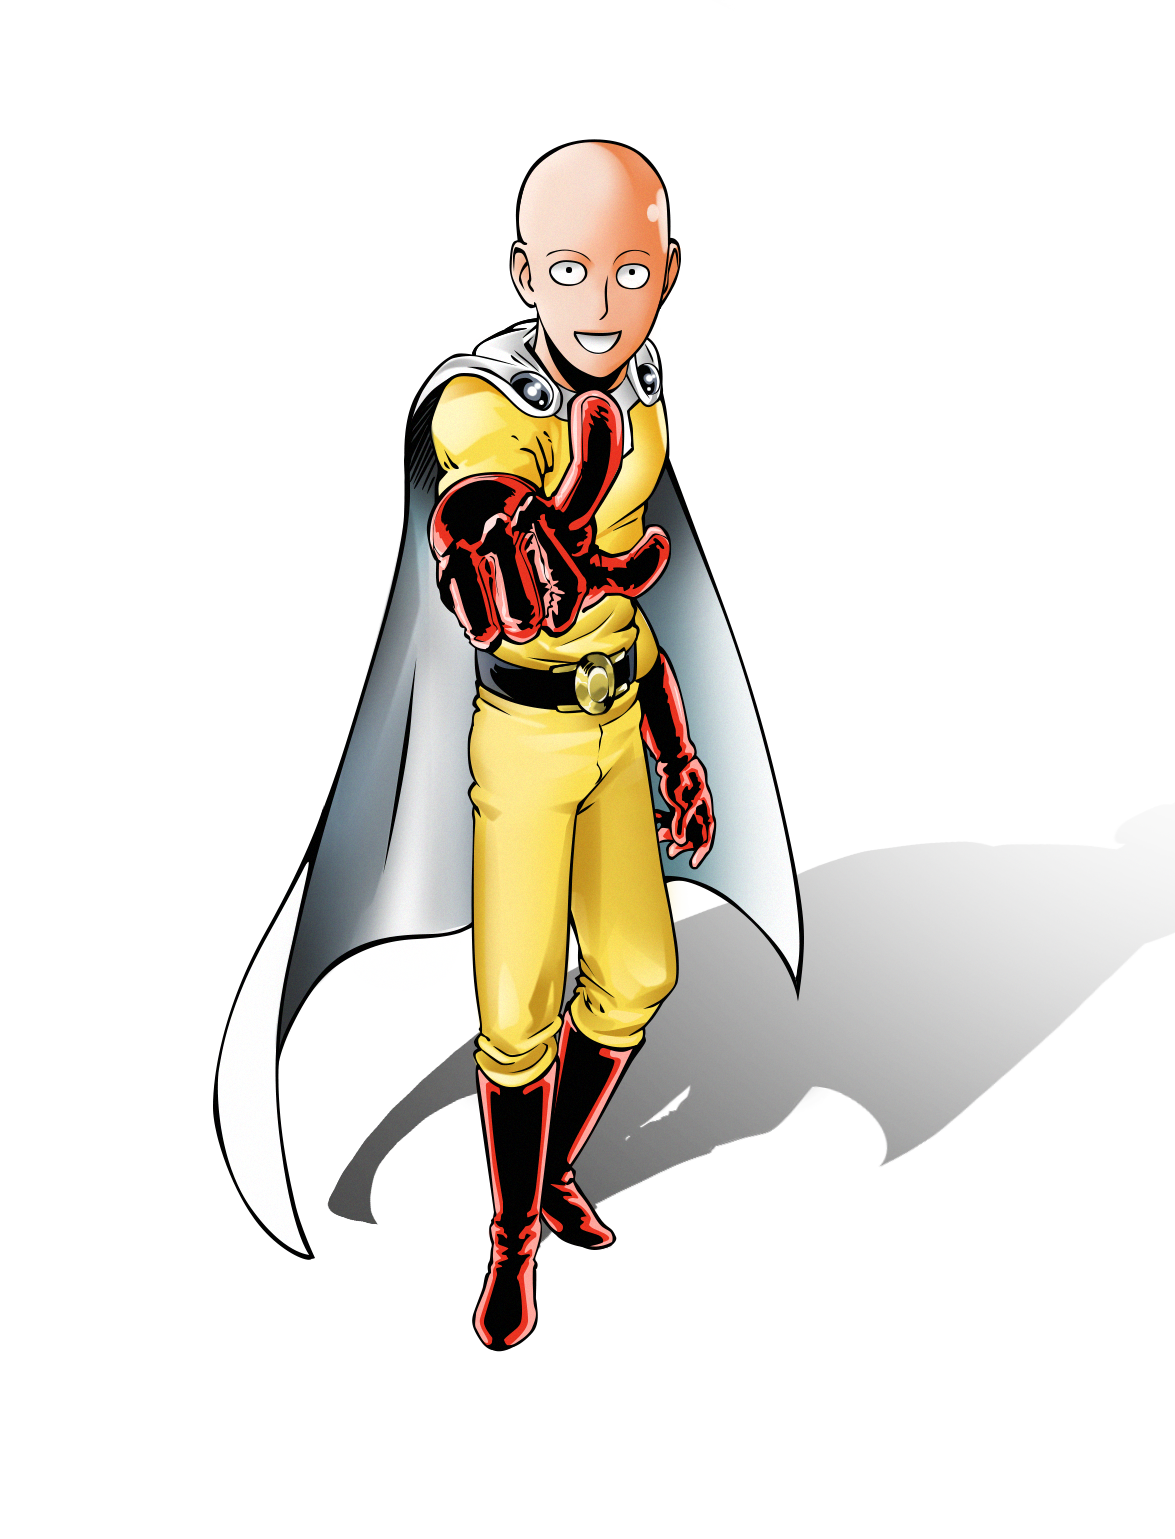 Saitama one punch man png. Deadliest fiction wiki fandom